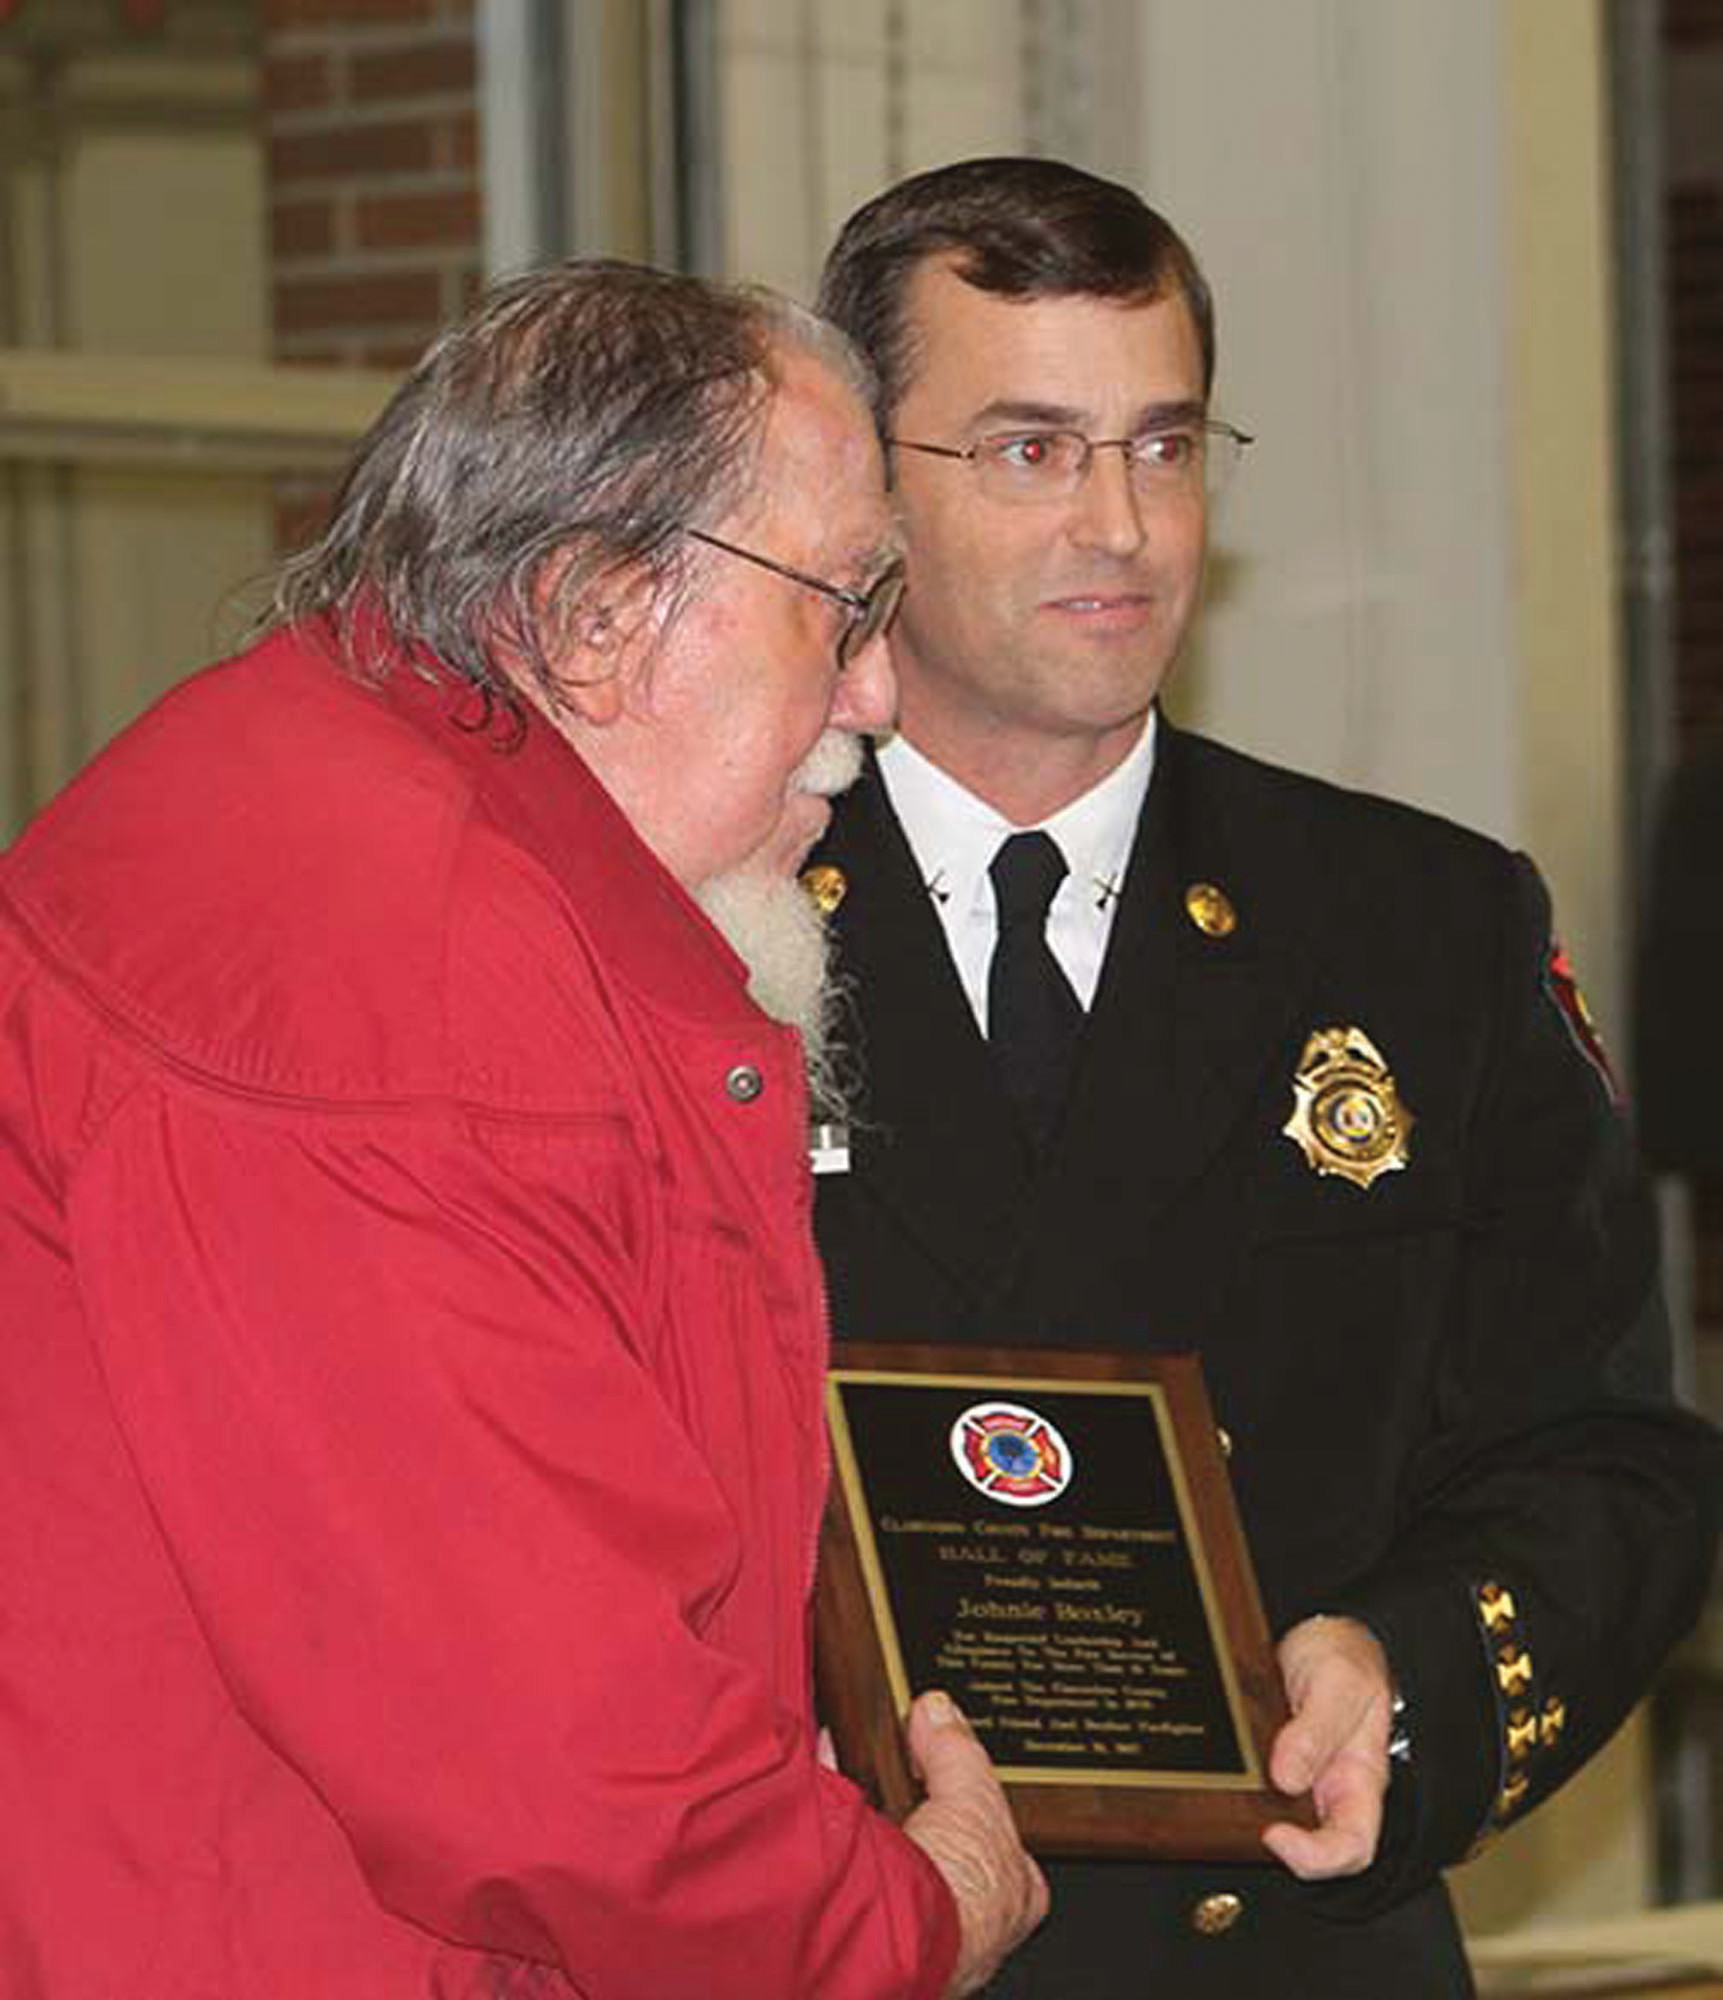 Volunteer firefighter Johnny Boxley was elected into Clarendon County Fire Department's Hall of Fame. Known for his colorful suspenders and headband, Boxley and his wife, Shirley, were an integral part of Wyboo Station 4, raising more than $60,000 through the years for needed fire equipment at Station 4 and throughout the county.